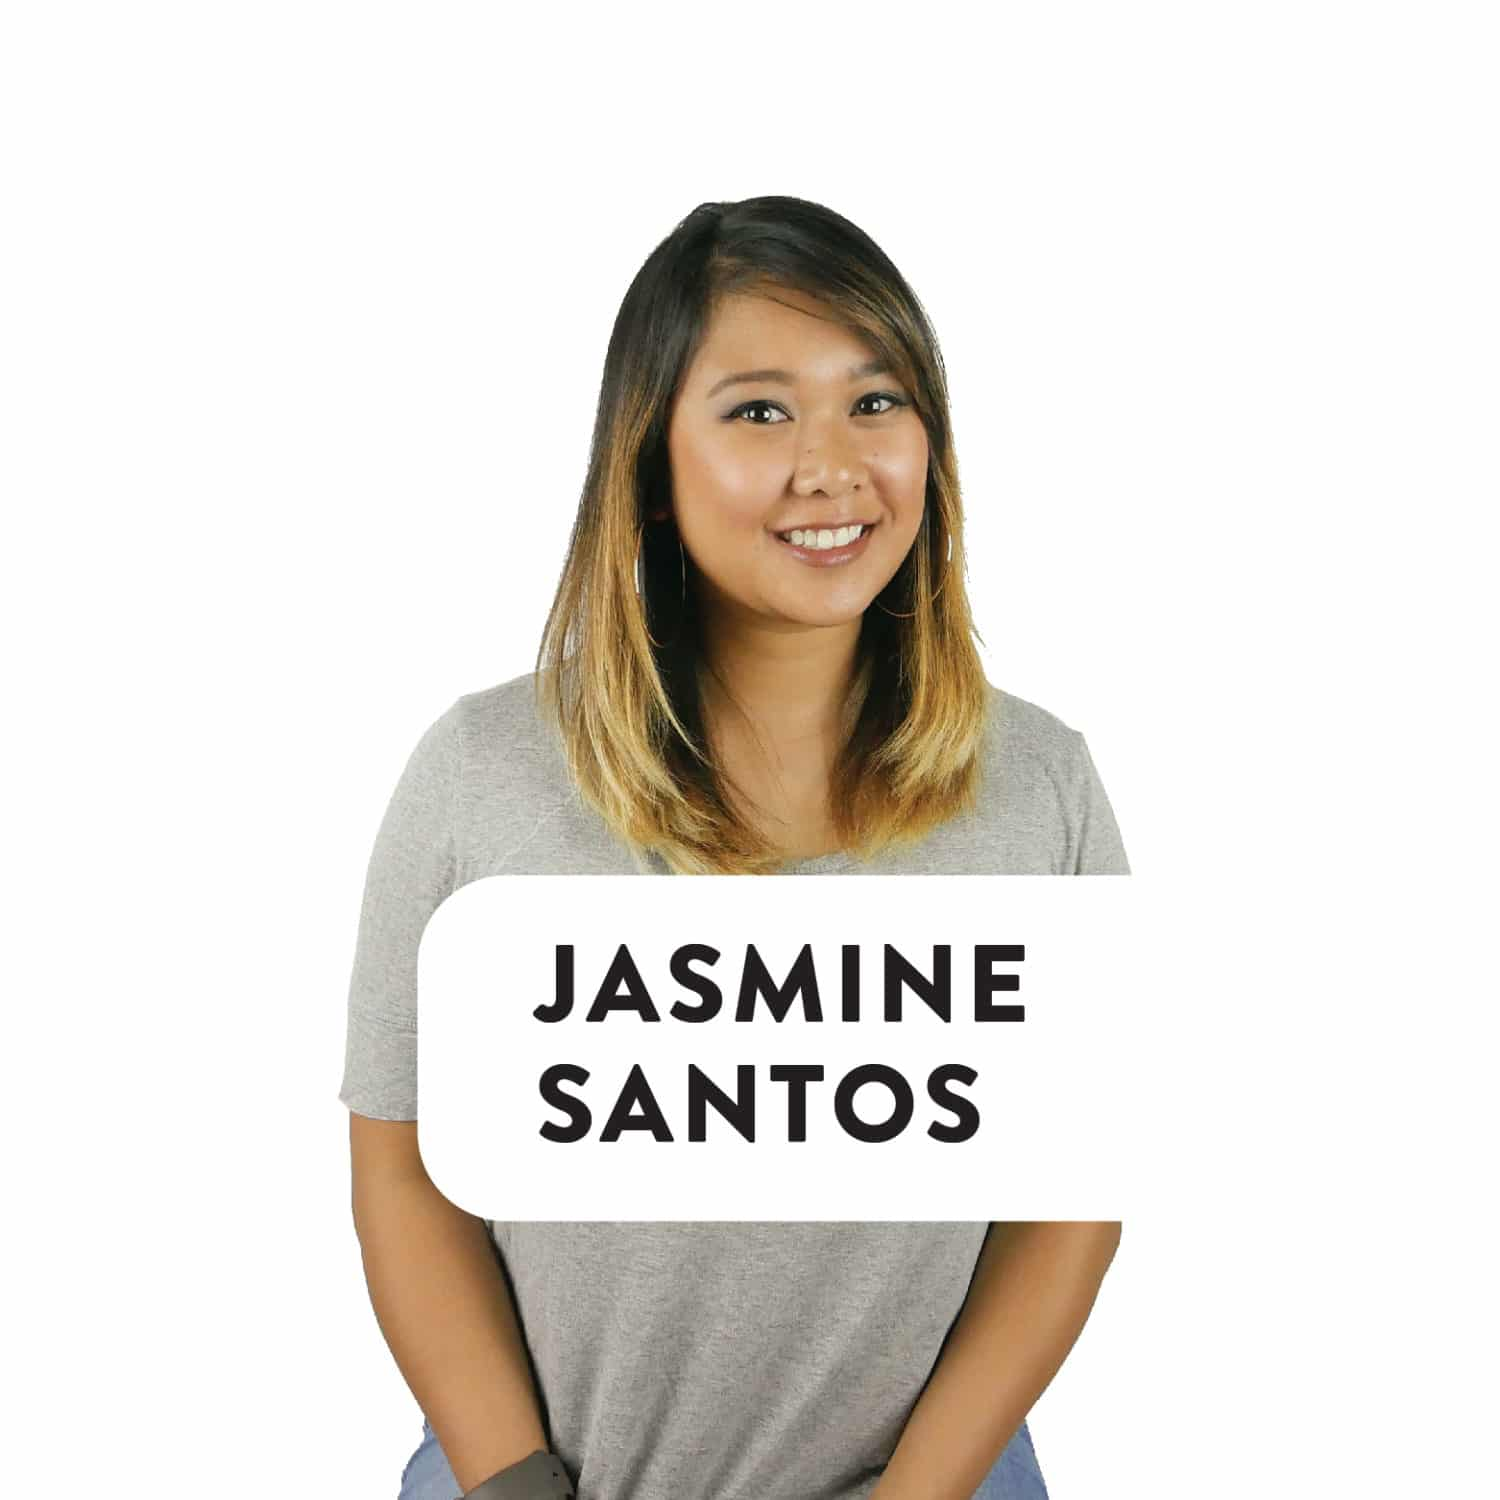 jasmine santos, In The Mind: #1 – Jasmine Santos